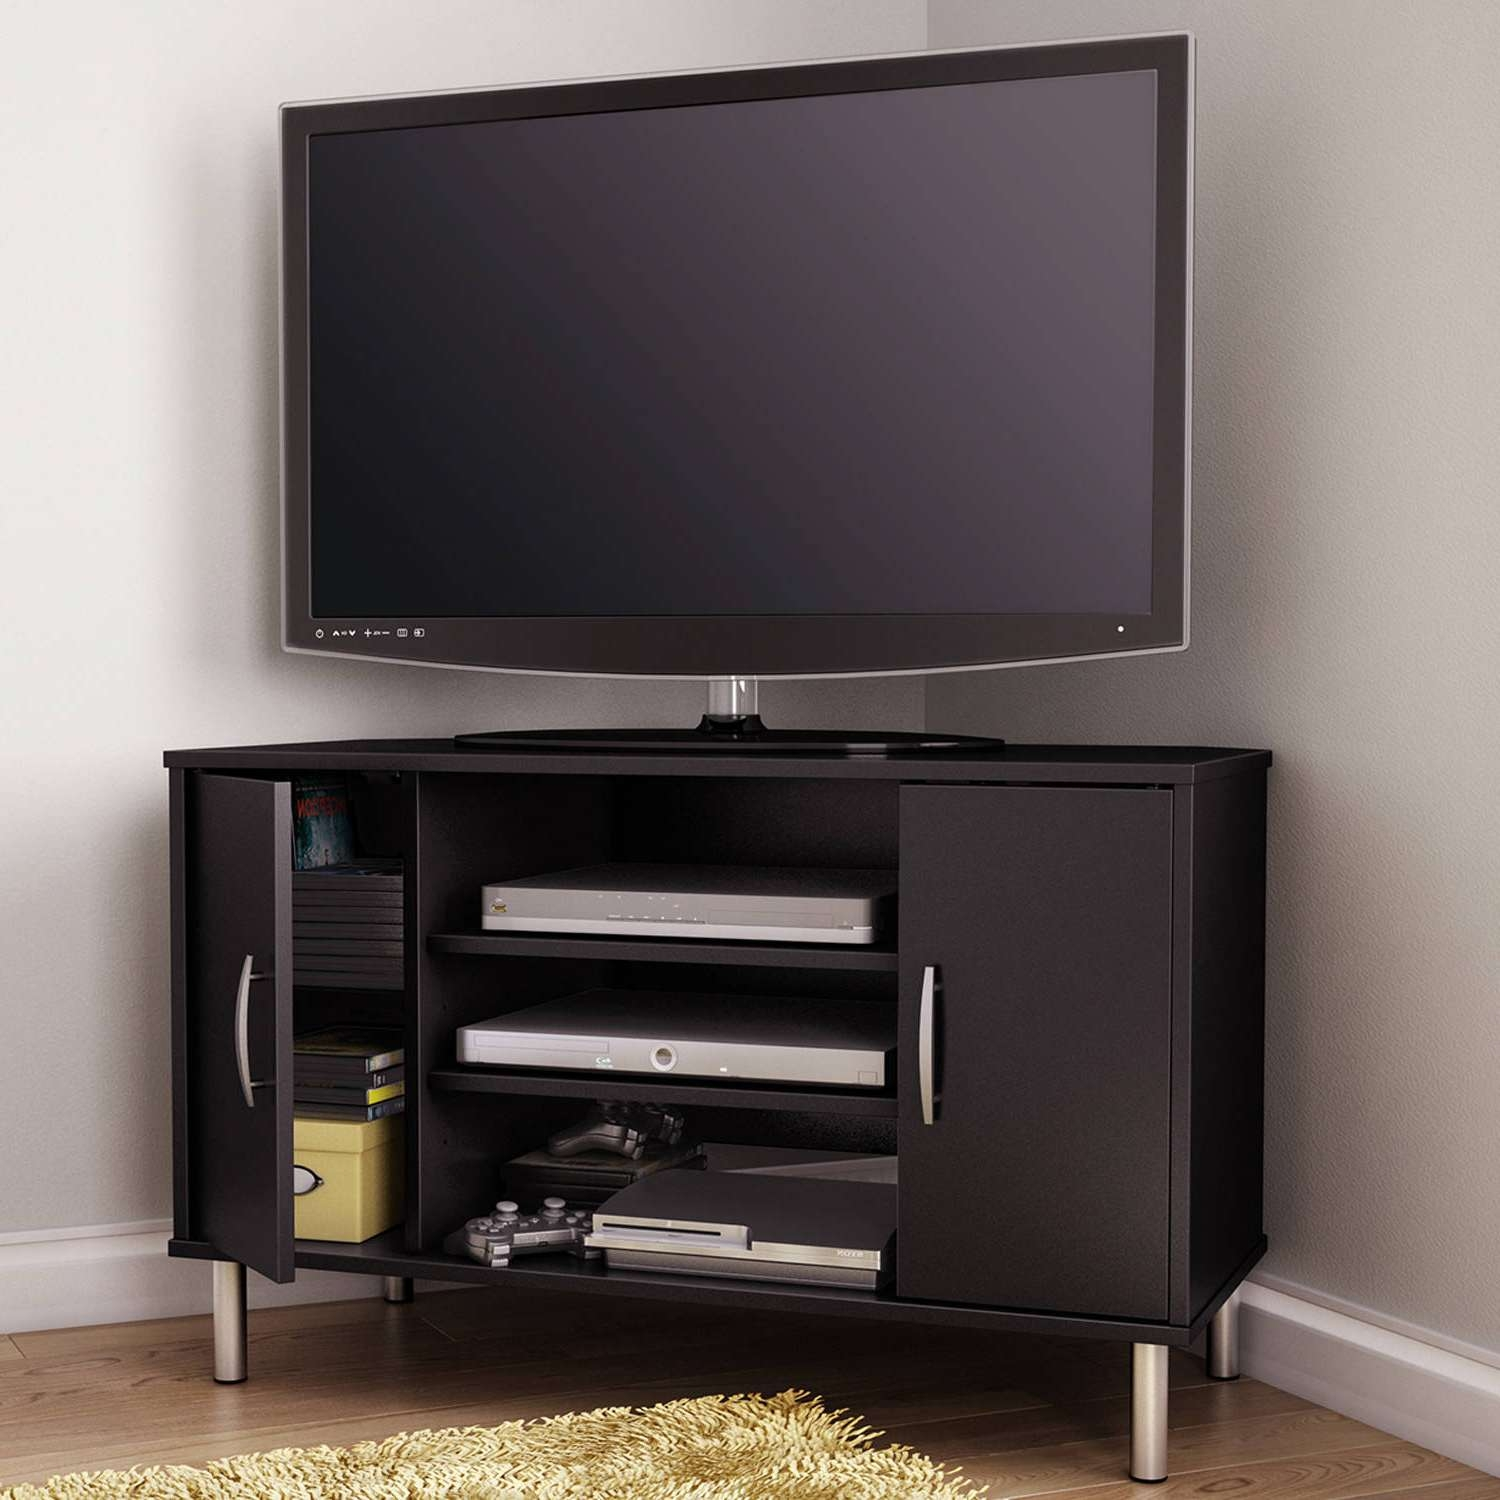 Storage Cabinets Ideas : Corner Tv Cabinet Black Choosing The With Regard To Black Corner Tv Cabinets With Glass Doors (View 13 of 20)